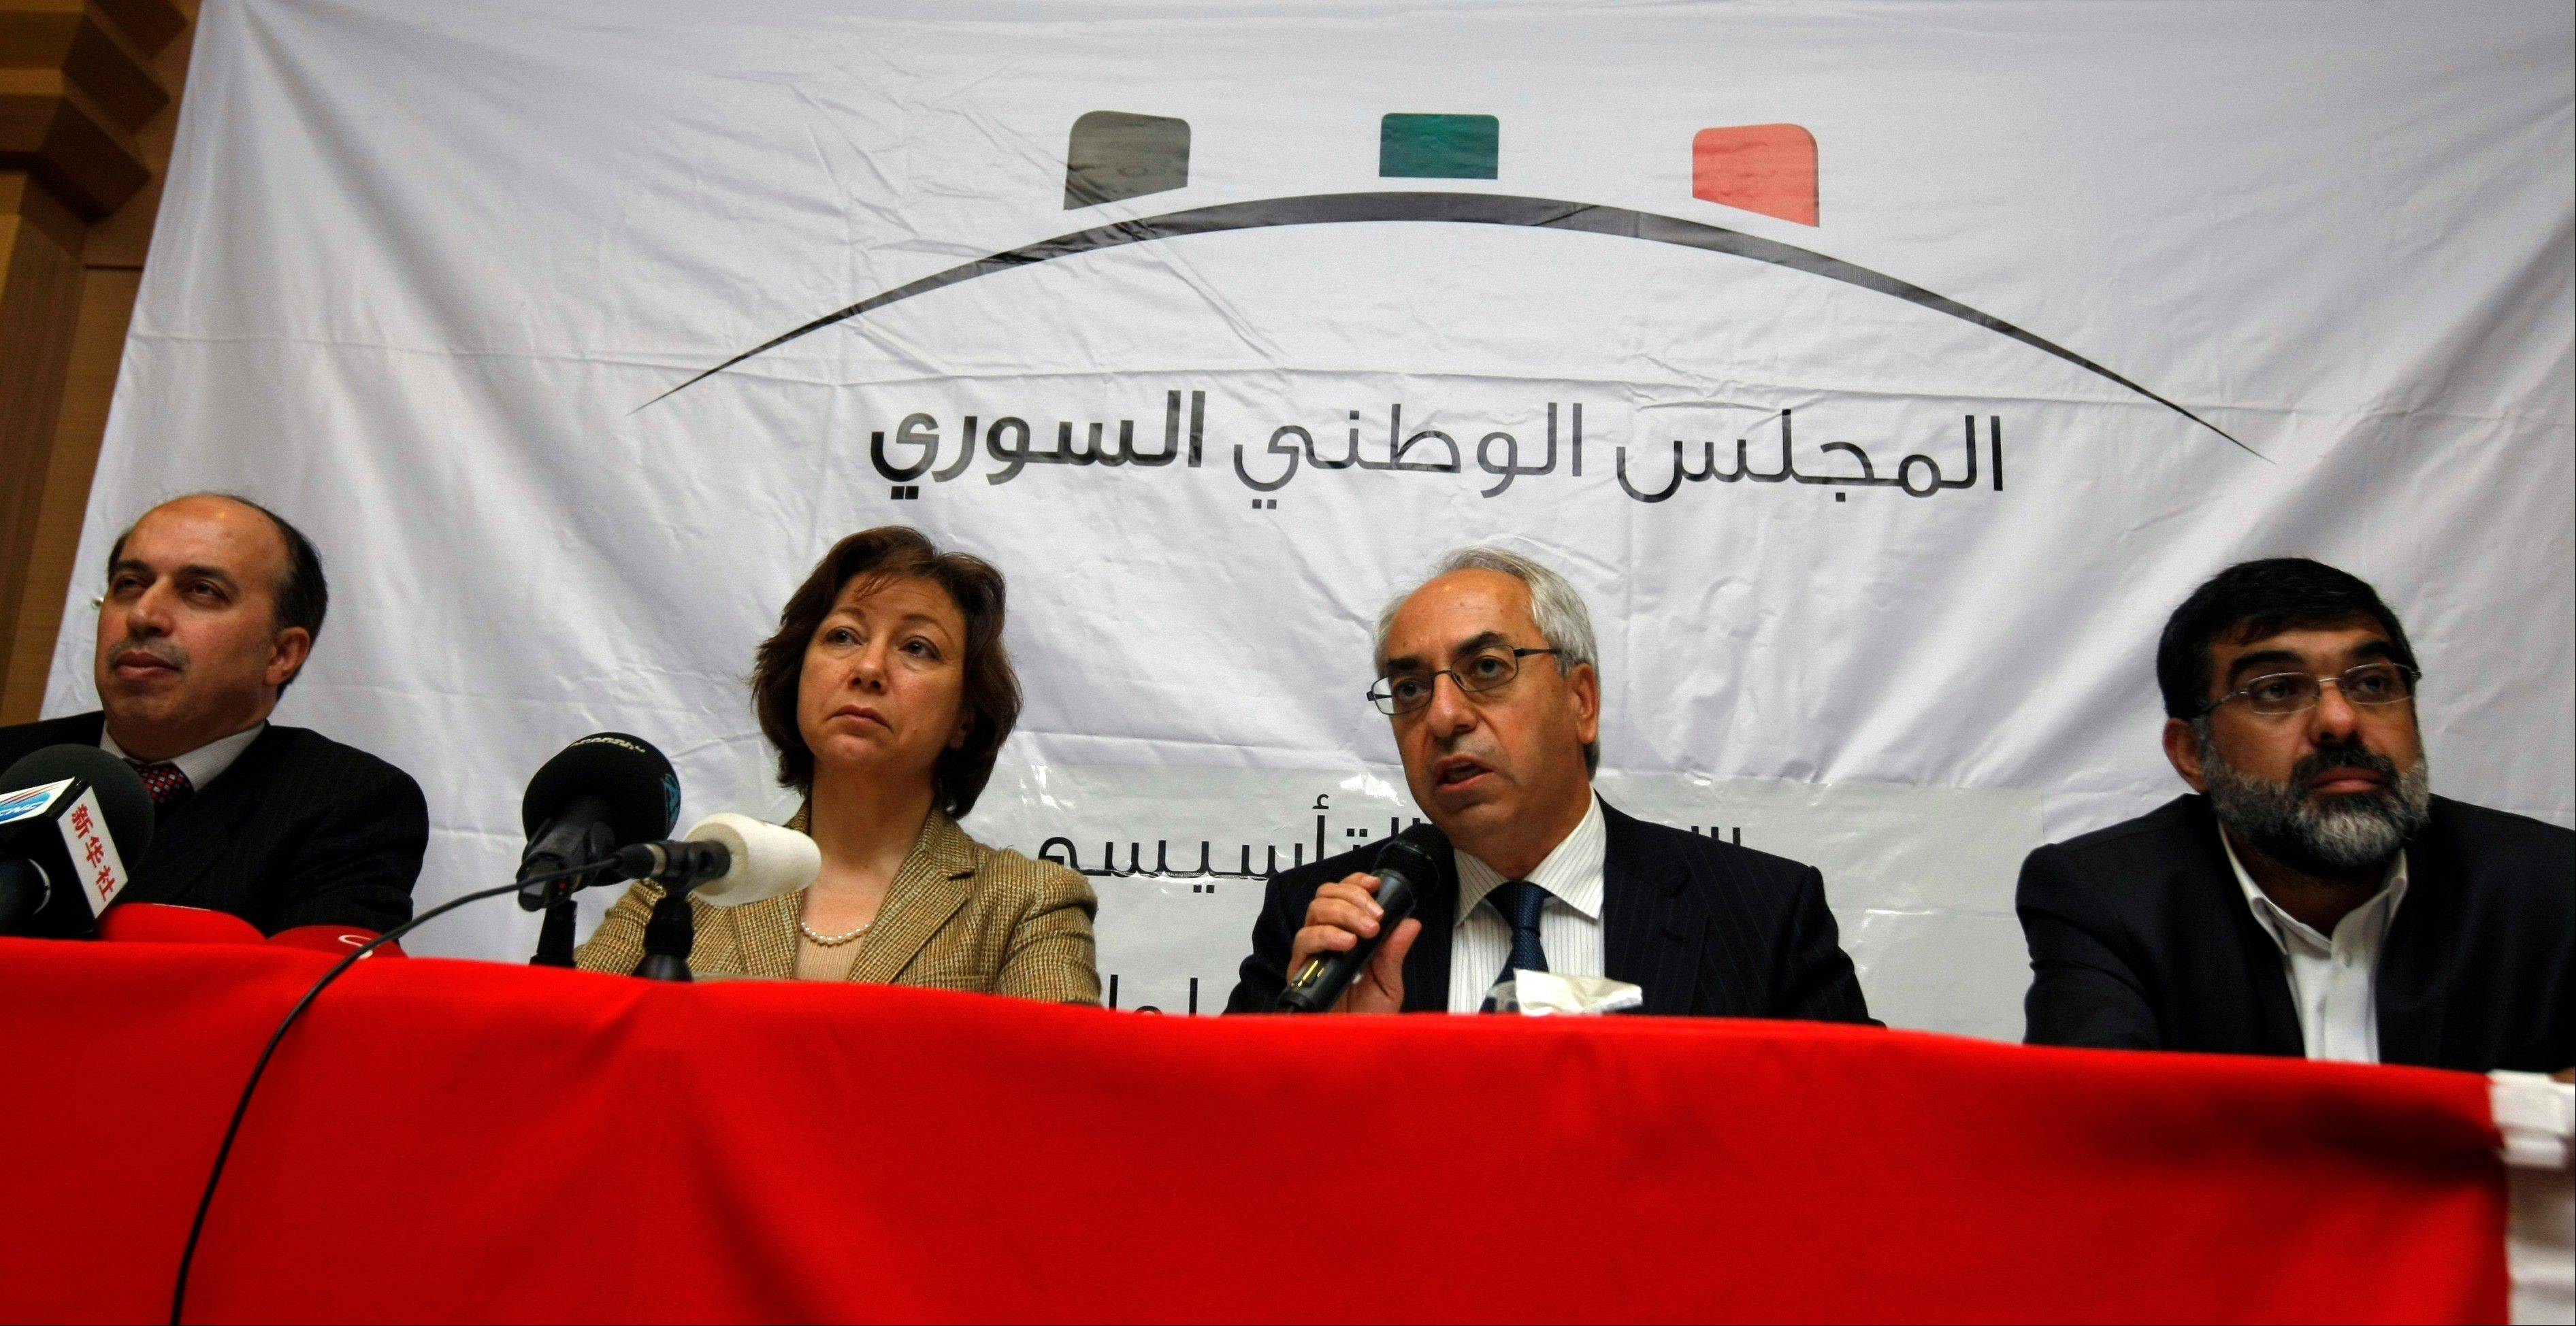 From left, Ahmed Ramadan, Bassma Kodmani, Abdulbaset Seida and Imad Aldeen Rashid speak as a group of Syrian opposition members announced a Syrian National Council in their bid to present a united front against President Bashar Assad�s regime, in Istanbul, Turkey.